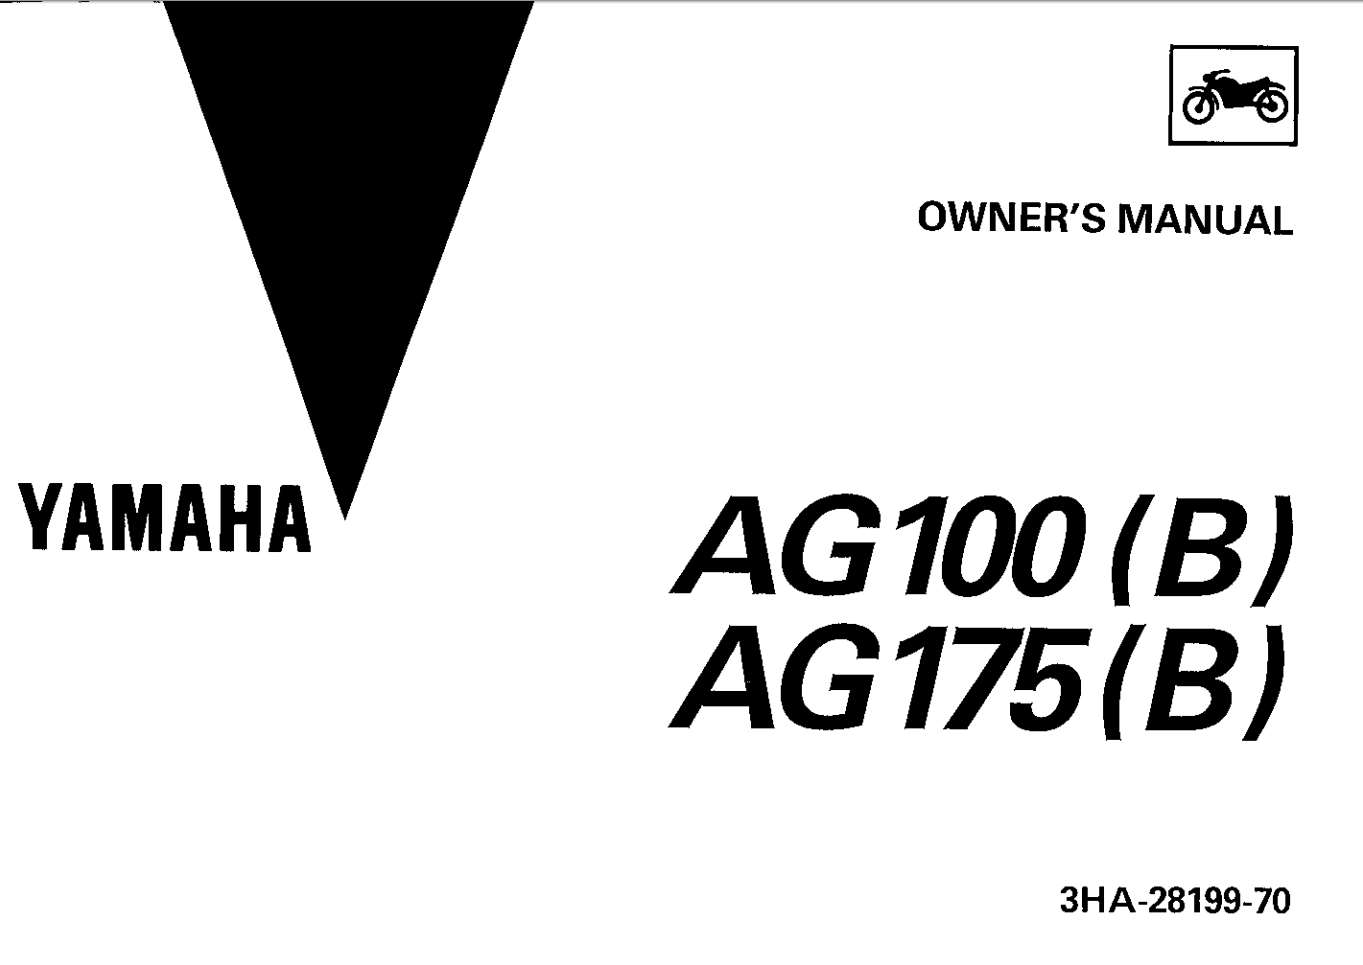 Yamaha AG100-175 B 1992 Owner's Manual